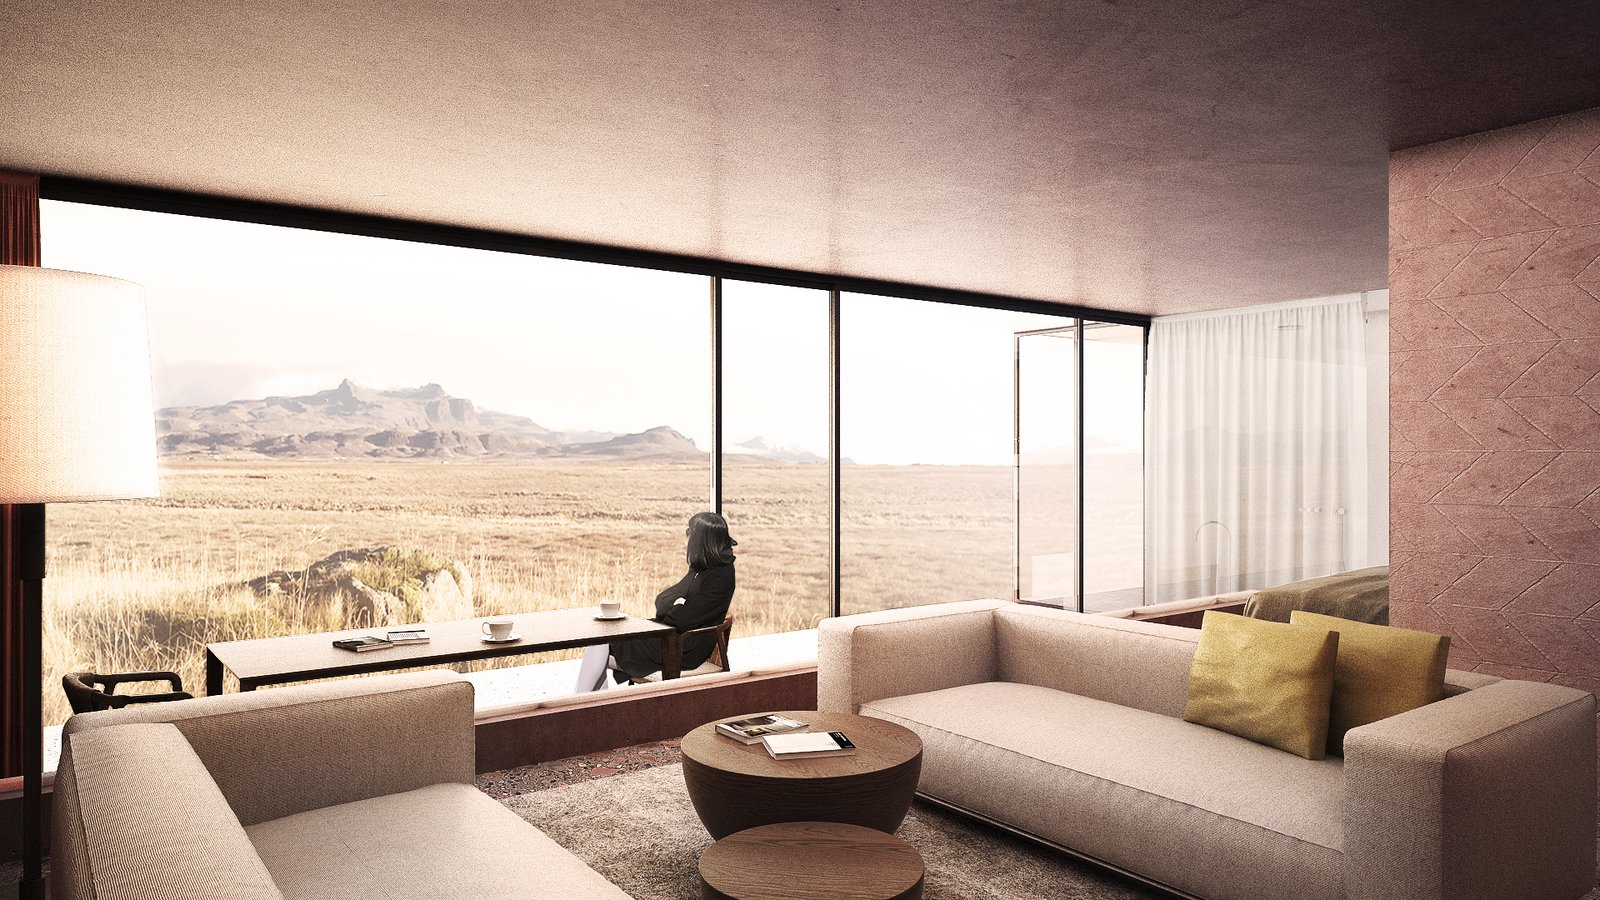 Living Room, Sofa, Coffee Tables, Chair, Table, Rug Floor, and Floor Lighting suite  Photo 9 of 18 in A Proposed Icelandic Resort Celebrates Wellness and its Magical Surroundings